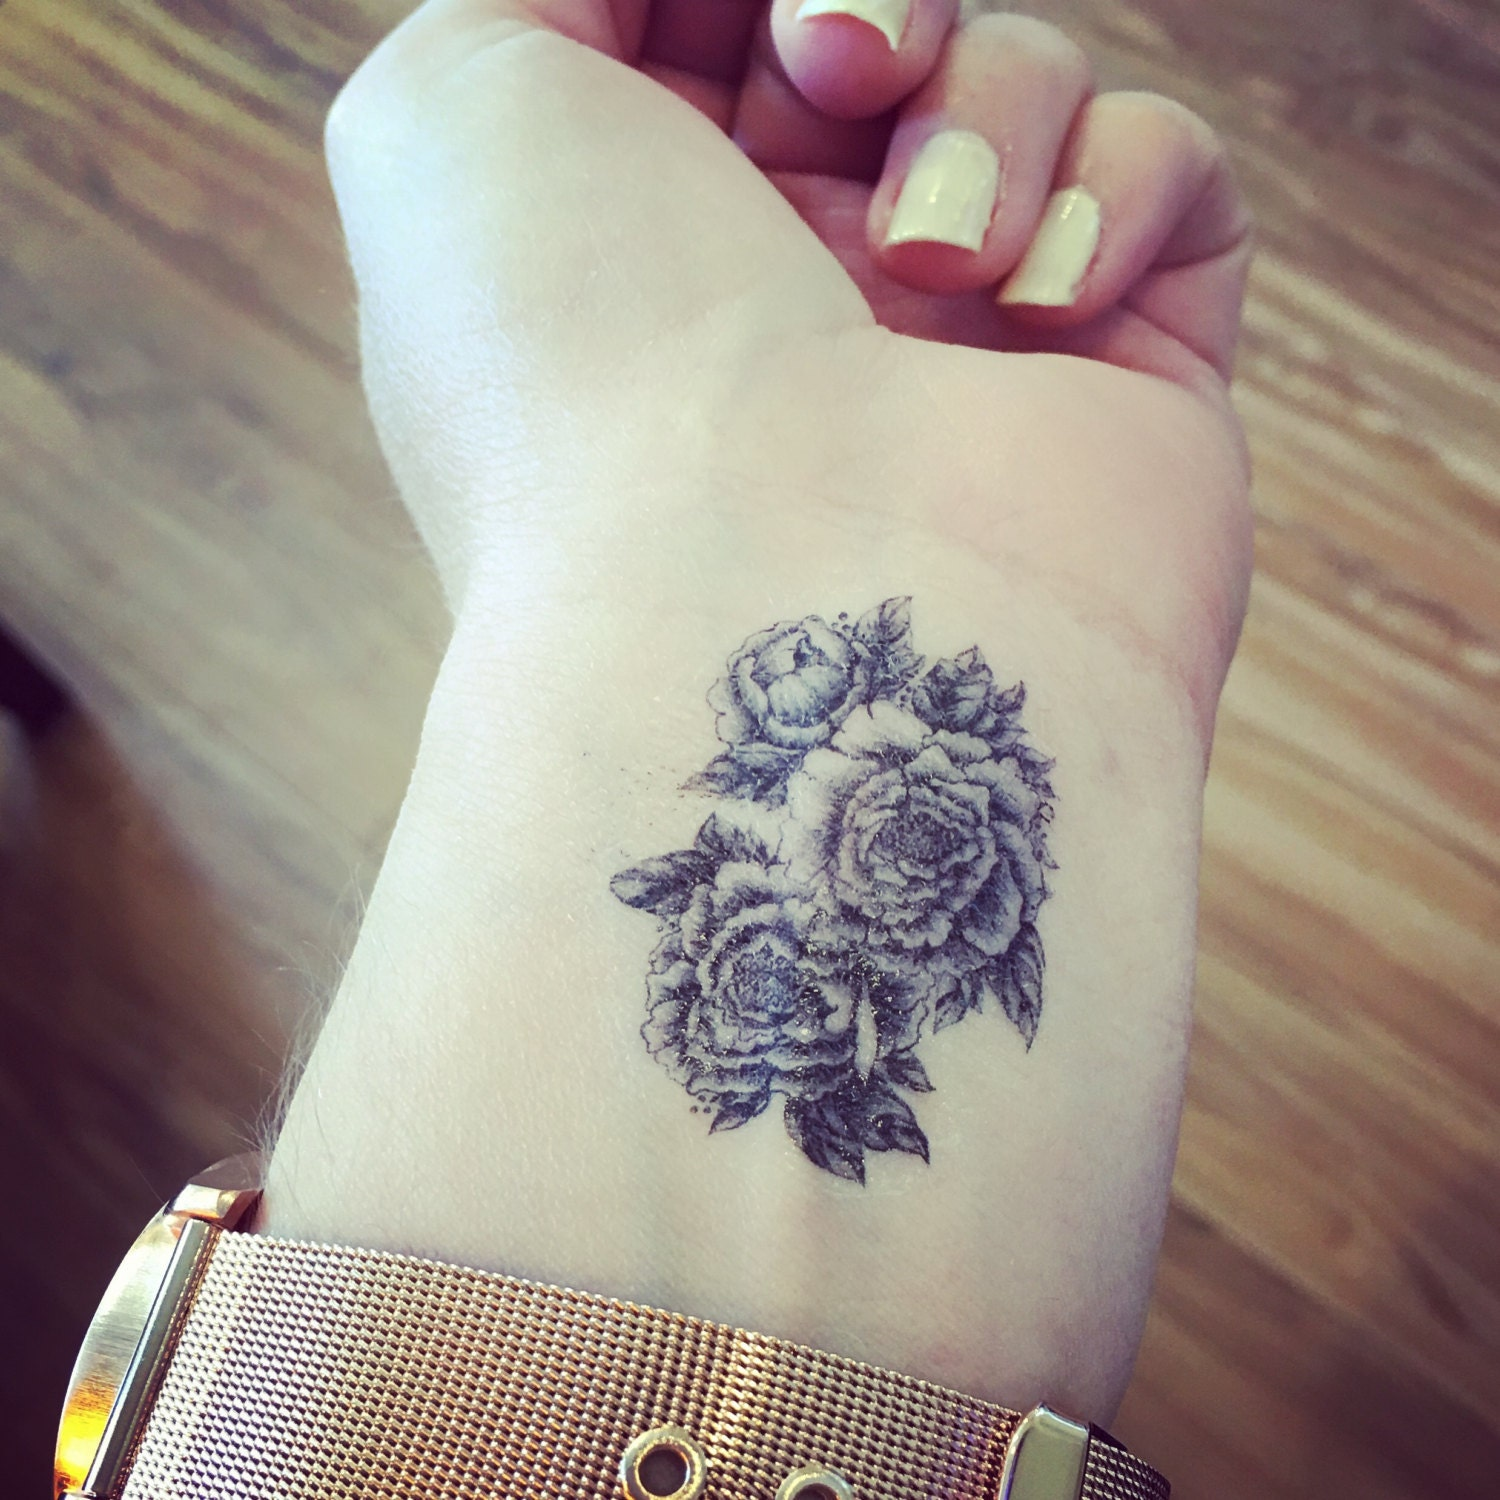 Temporary tattoo floral peony tattoo floral tattoo for Floral temporary tattoos